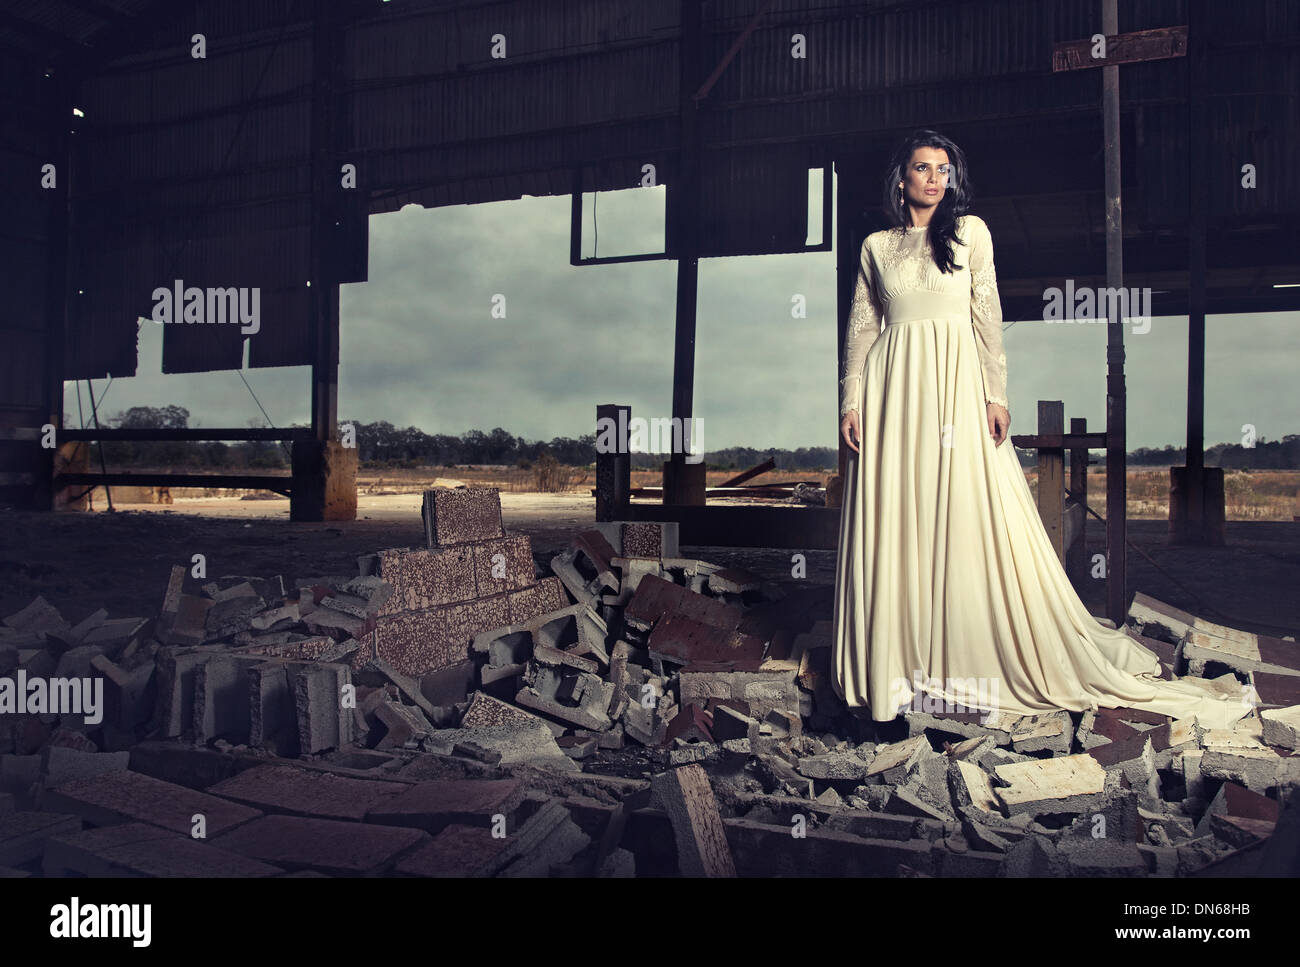 Woman in antique wedding dress standing on a pile of rubble - Stock Image